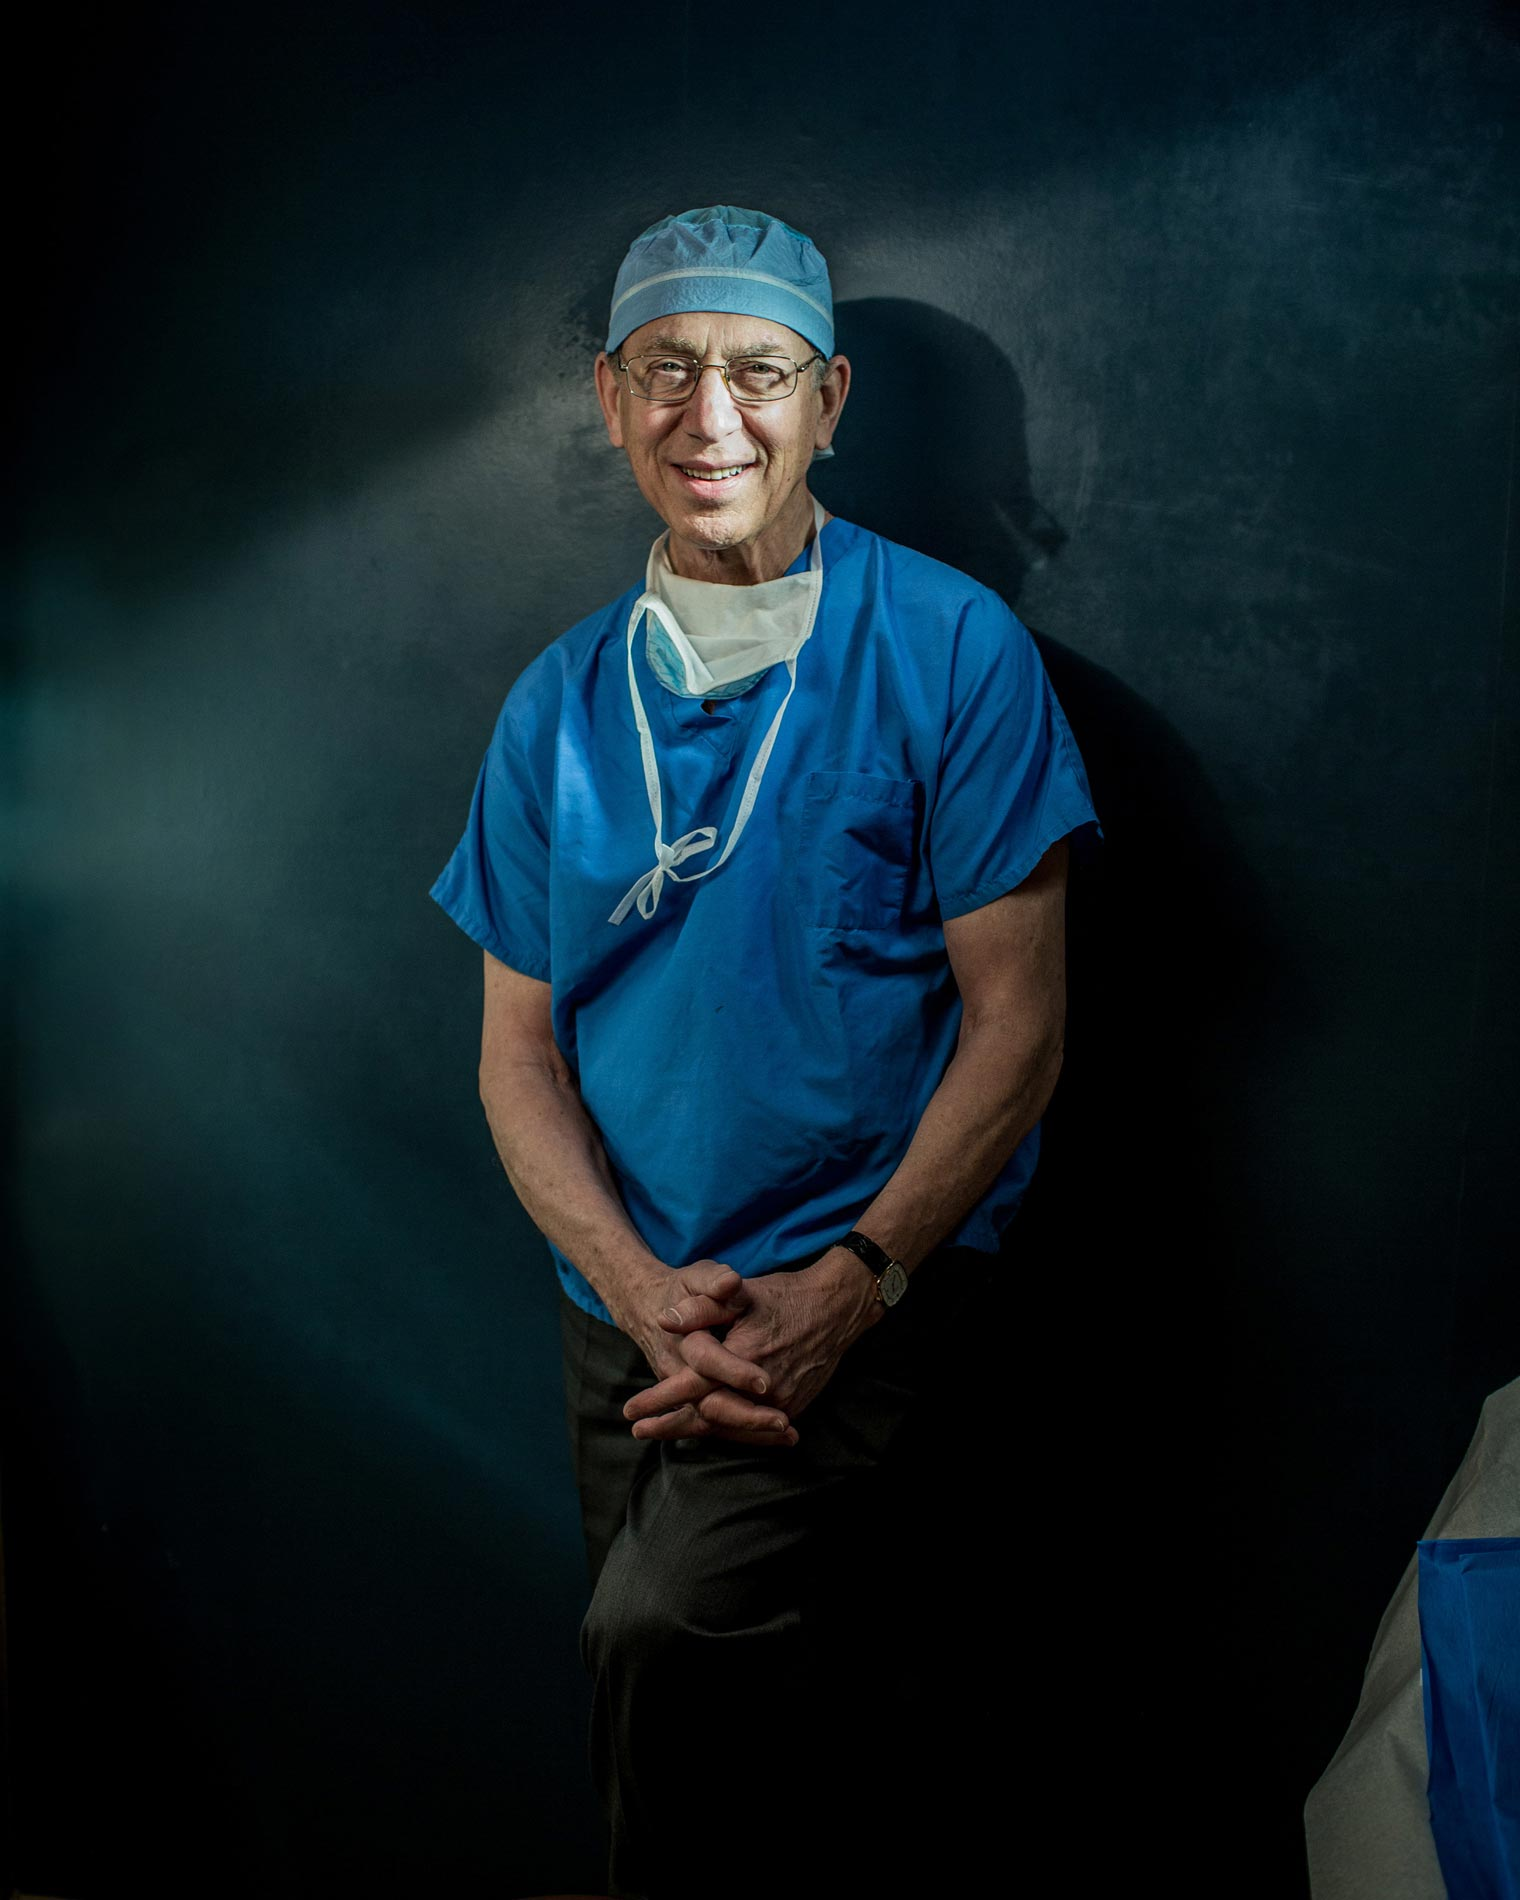 Rutgers, Dr. Sherman Leis, Surgeon